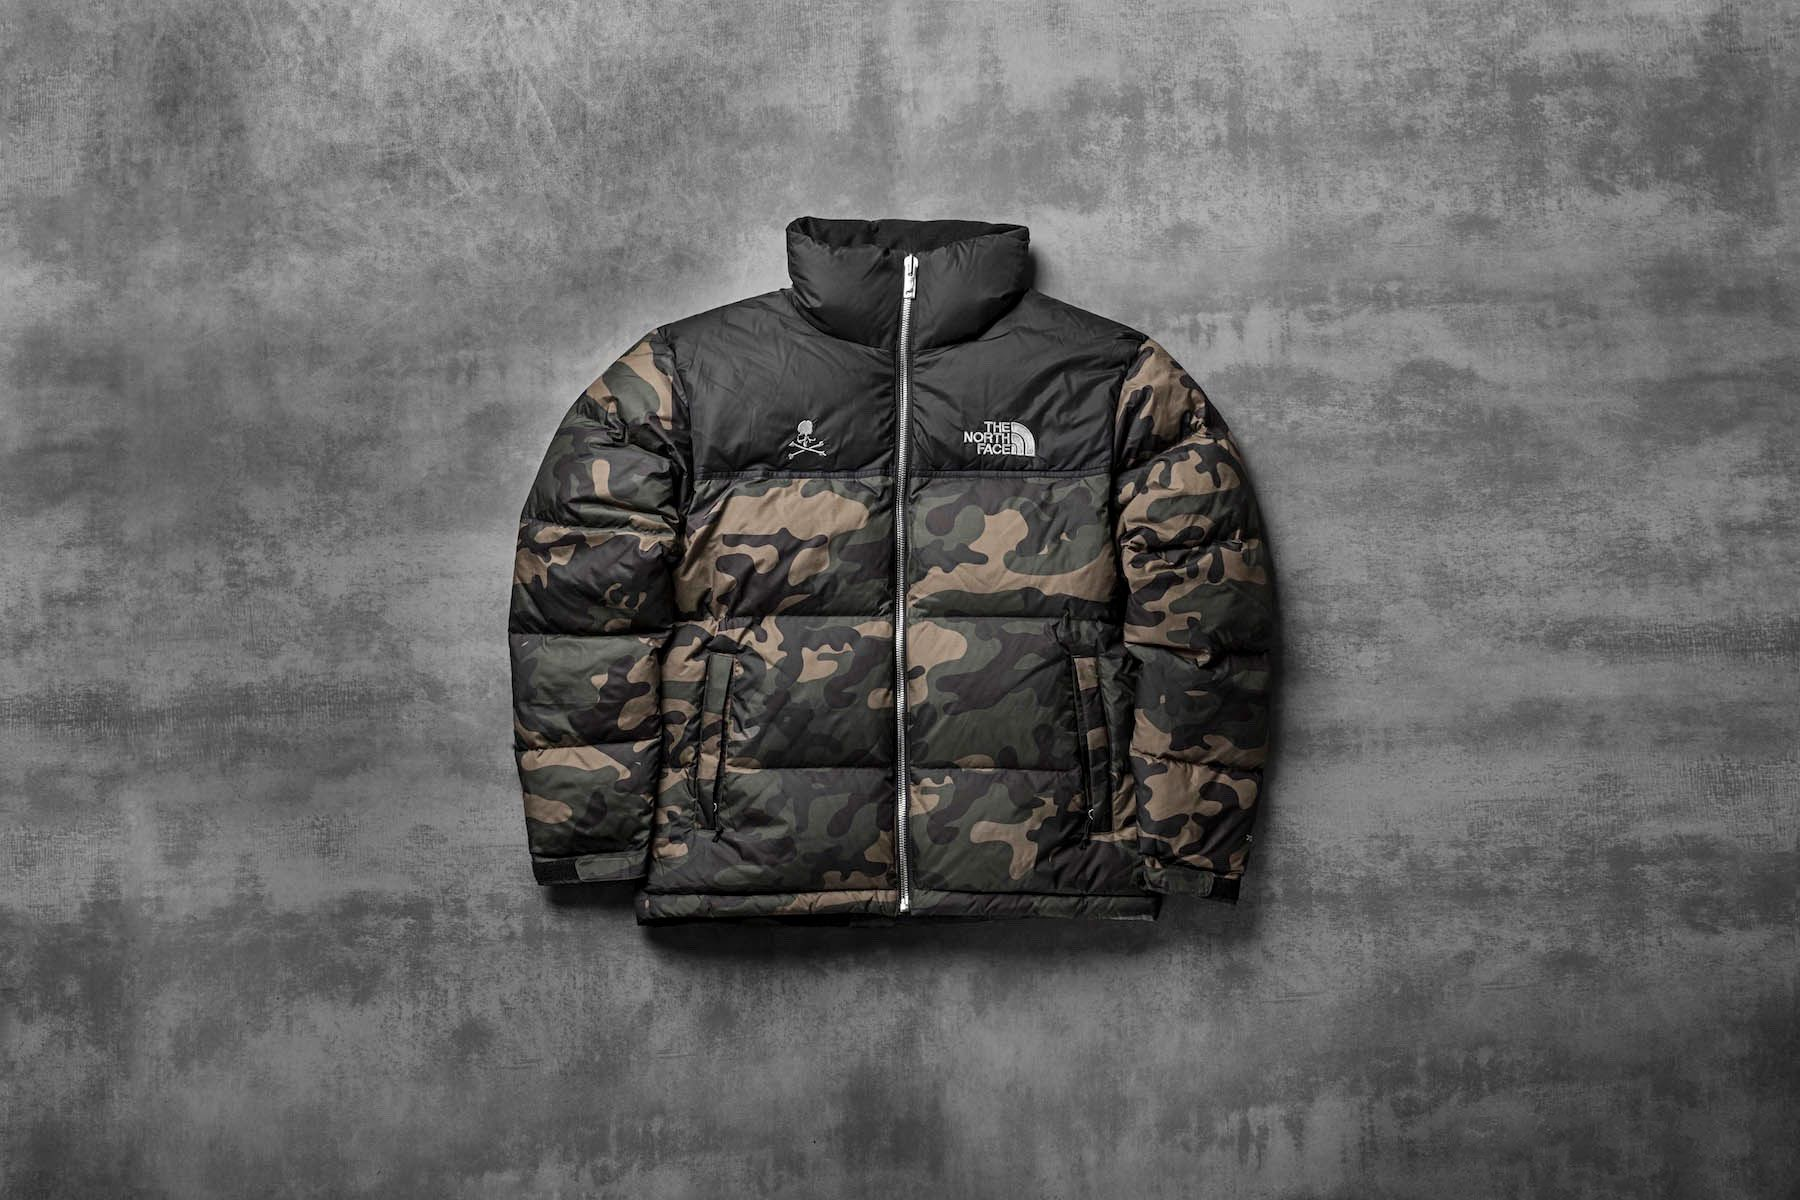 70390f102 A Full Look at the mastermind WORLD x The North Face Urban ...